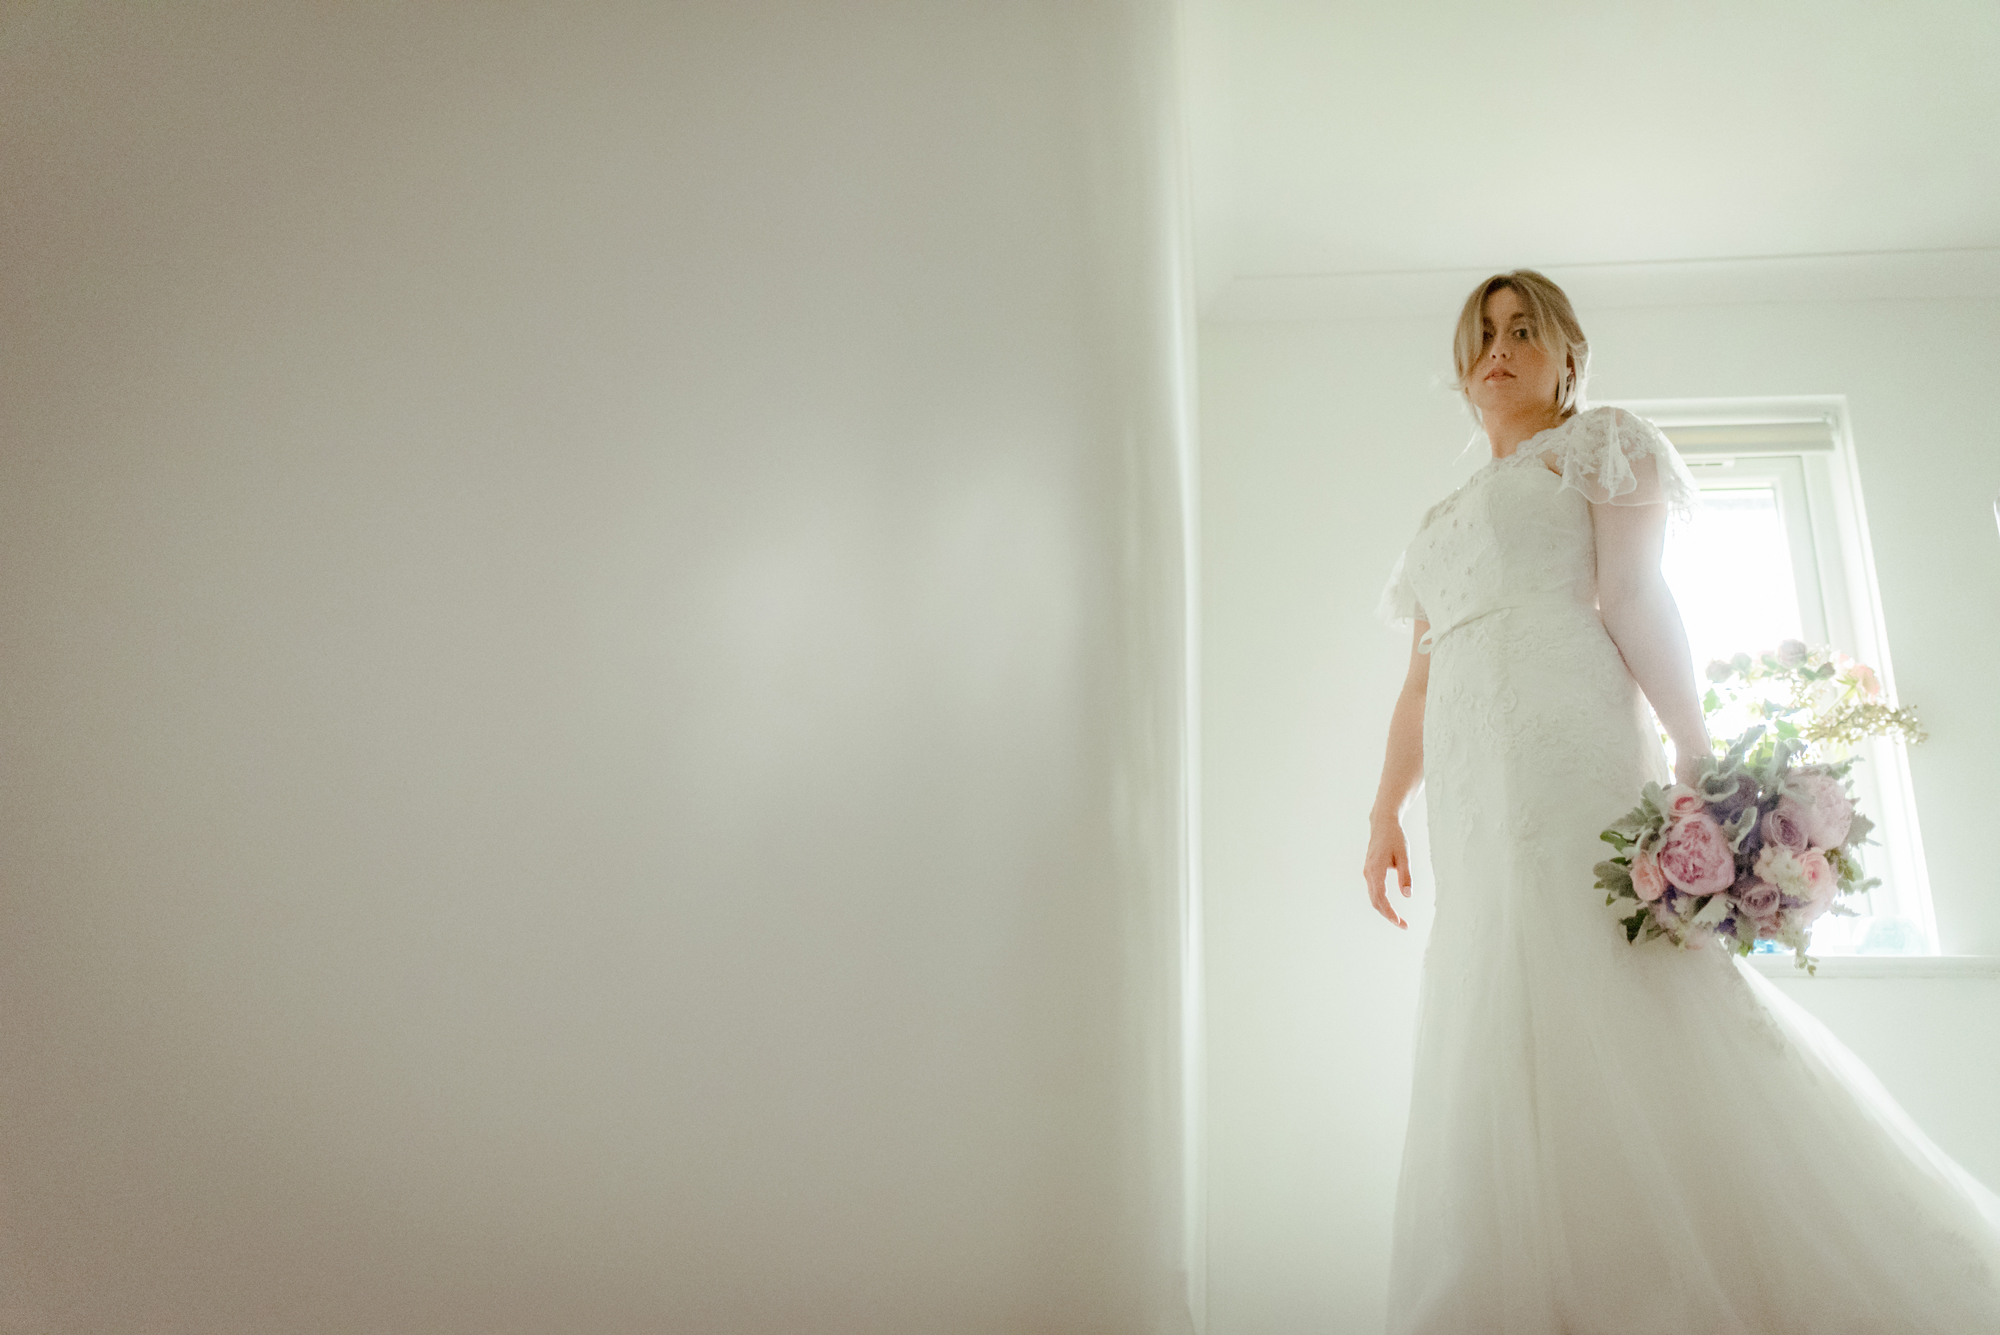 bridal-portraits-glasgow.jpg